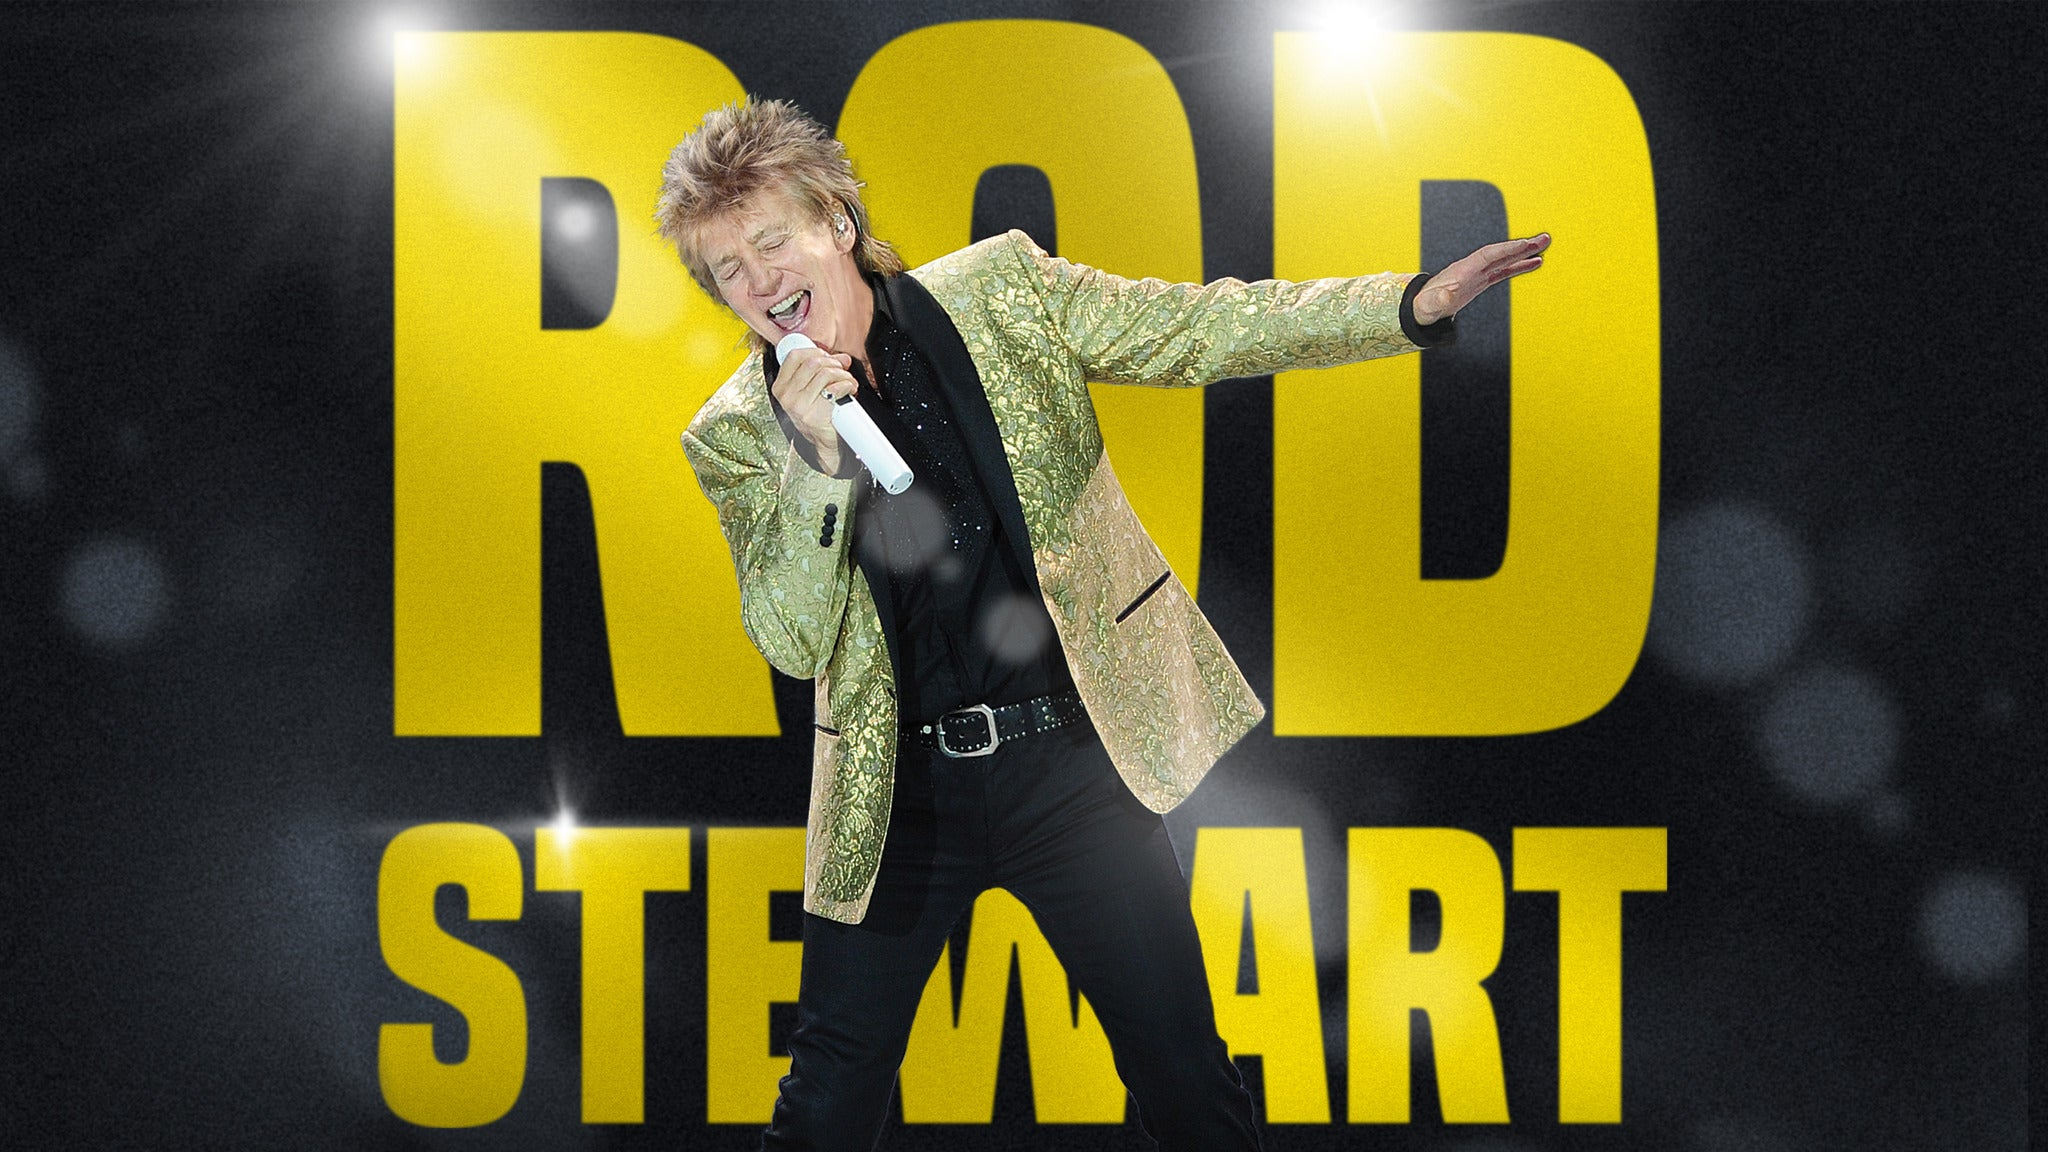 Rod Stewart at Idaho Center Arena